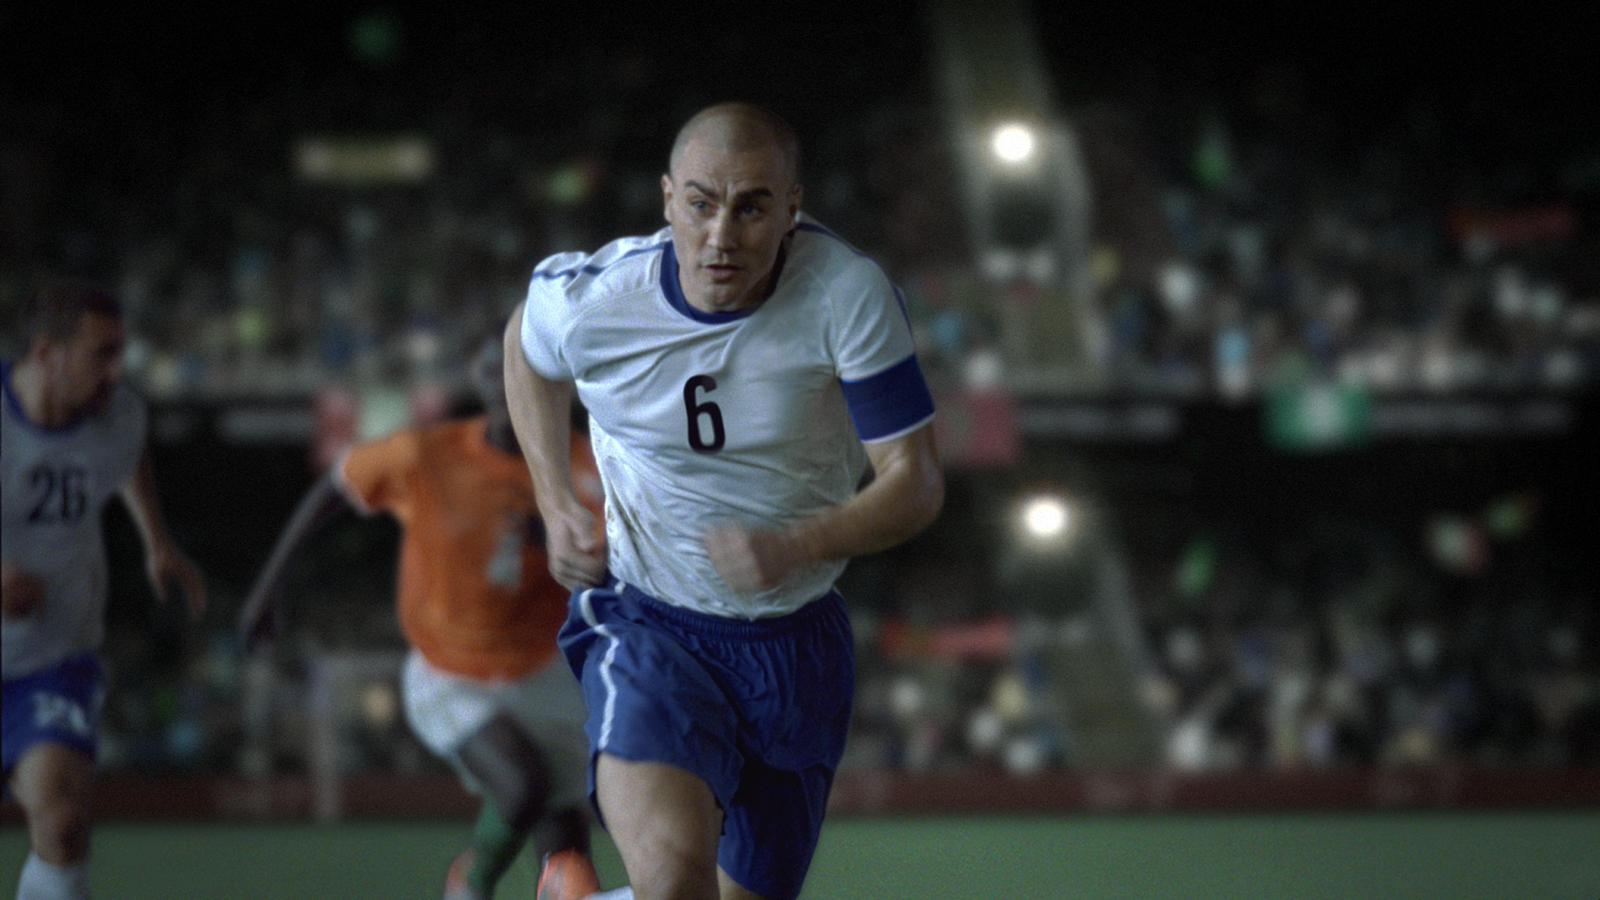 Encarnar agudo Conciencia  New Campaign Celebrates Football and its Heroes - Nike News